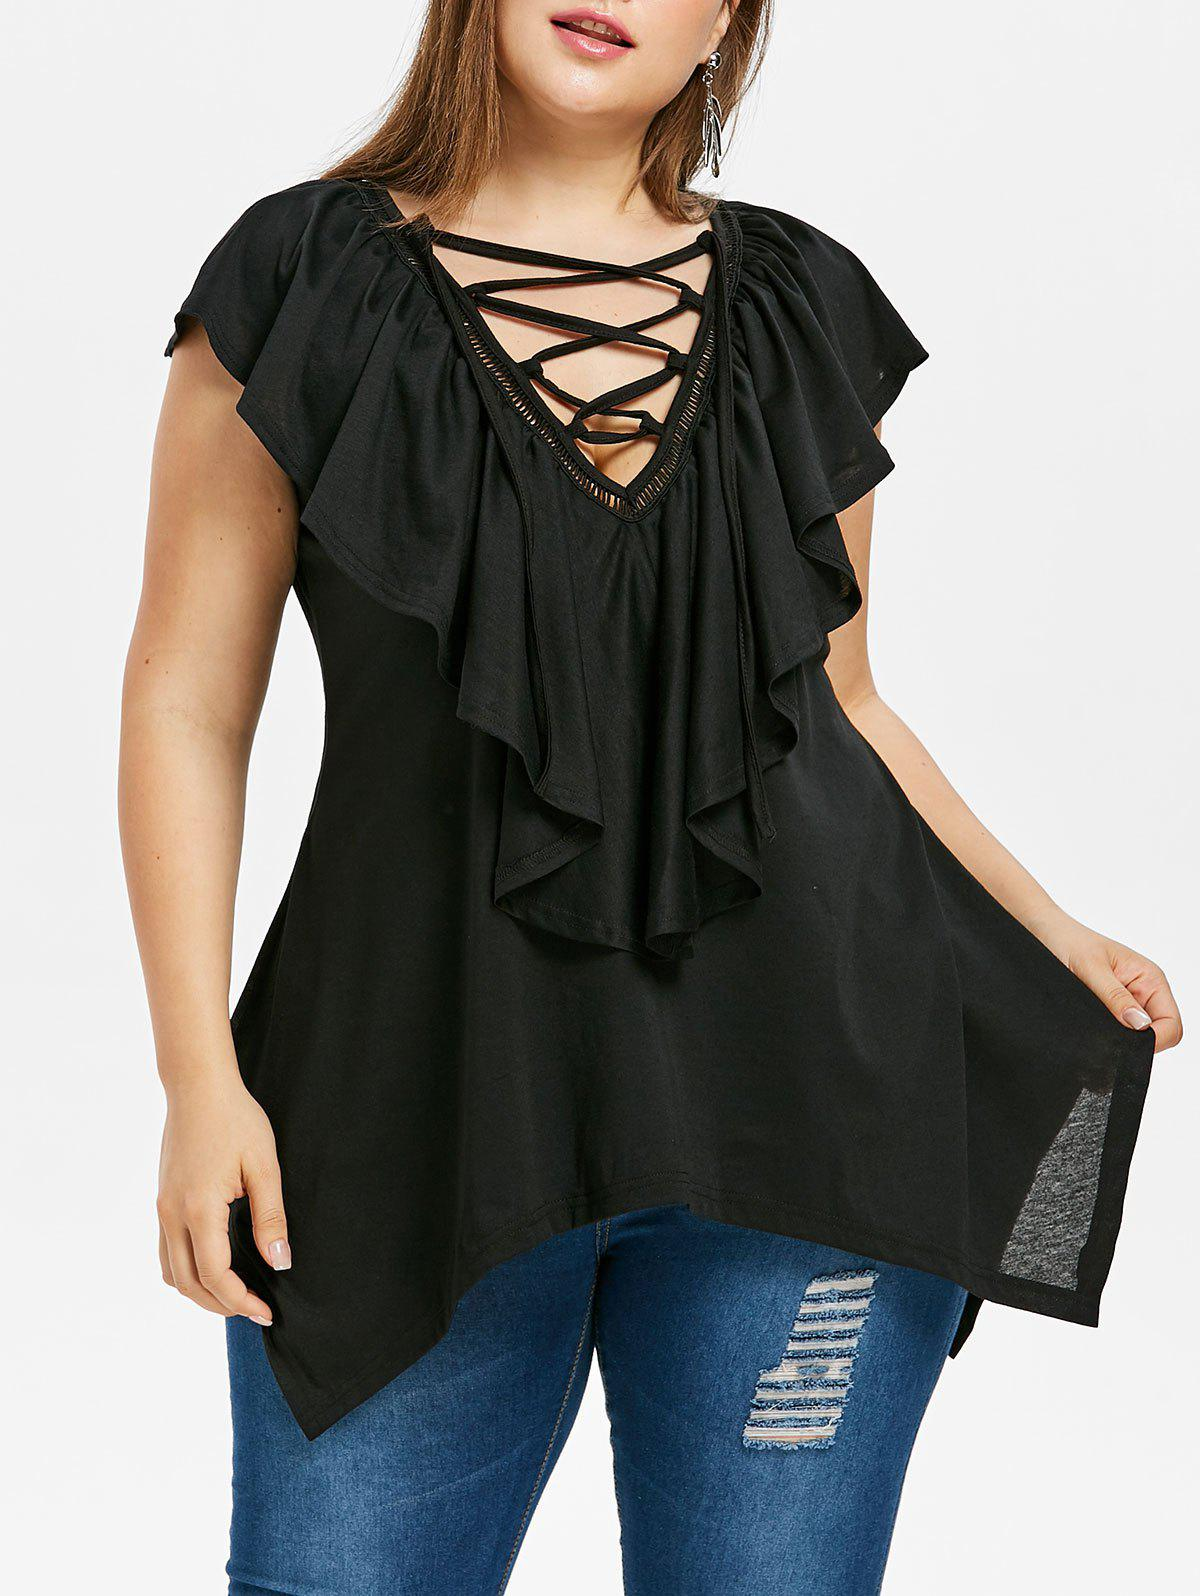 Plus Size Flounce Overlay Asymmetric T-shirt sleeveless plus size buttoned overlay shirt dress